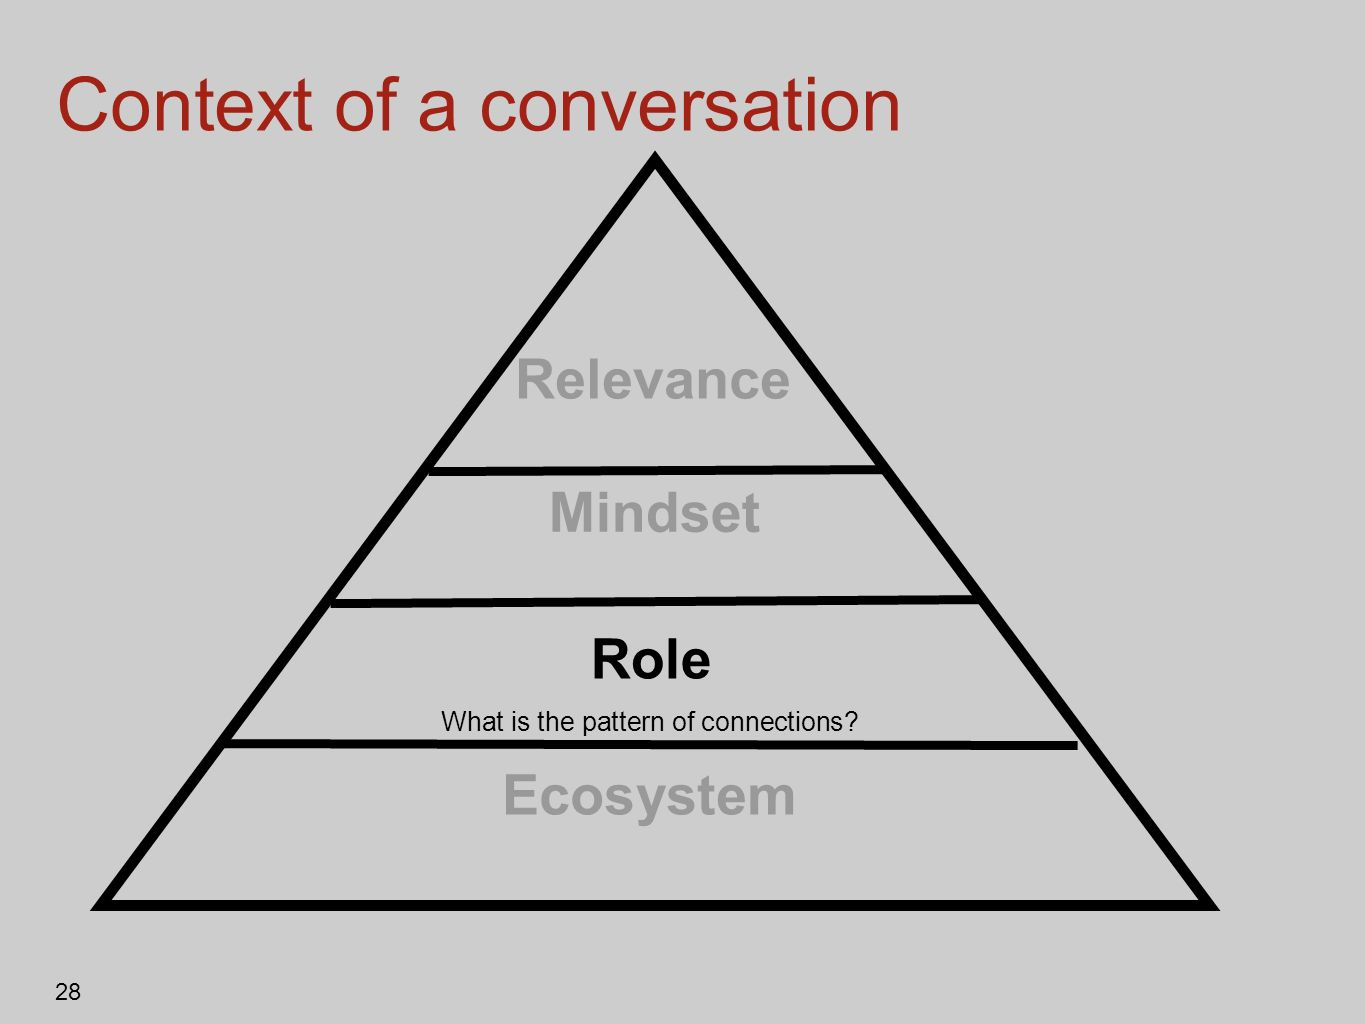 28 Context of a conversation Relevance Role Mindset Ecosystem What is the pattern of connections?